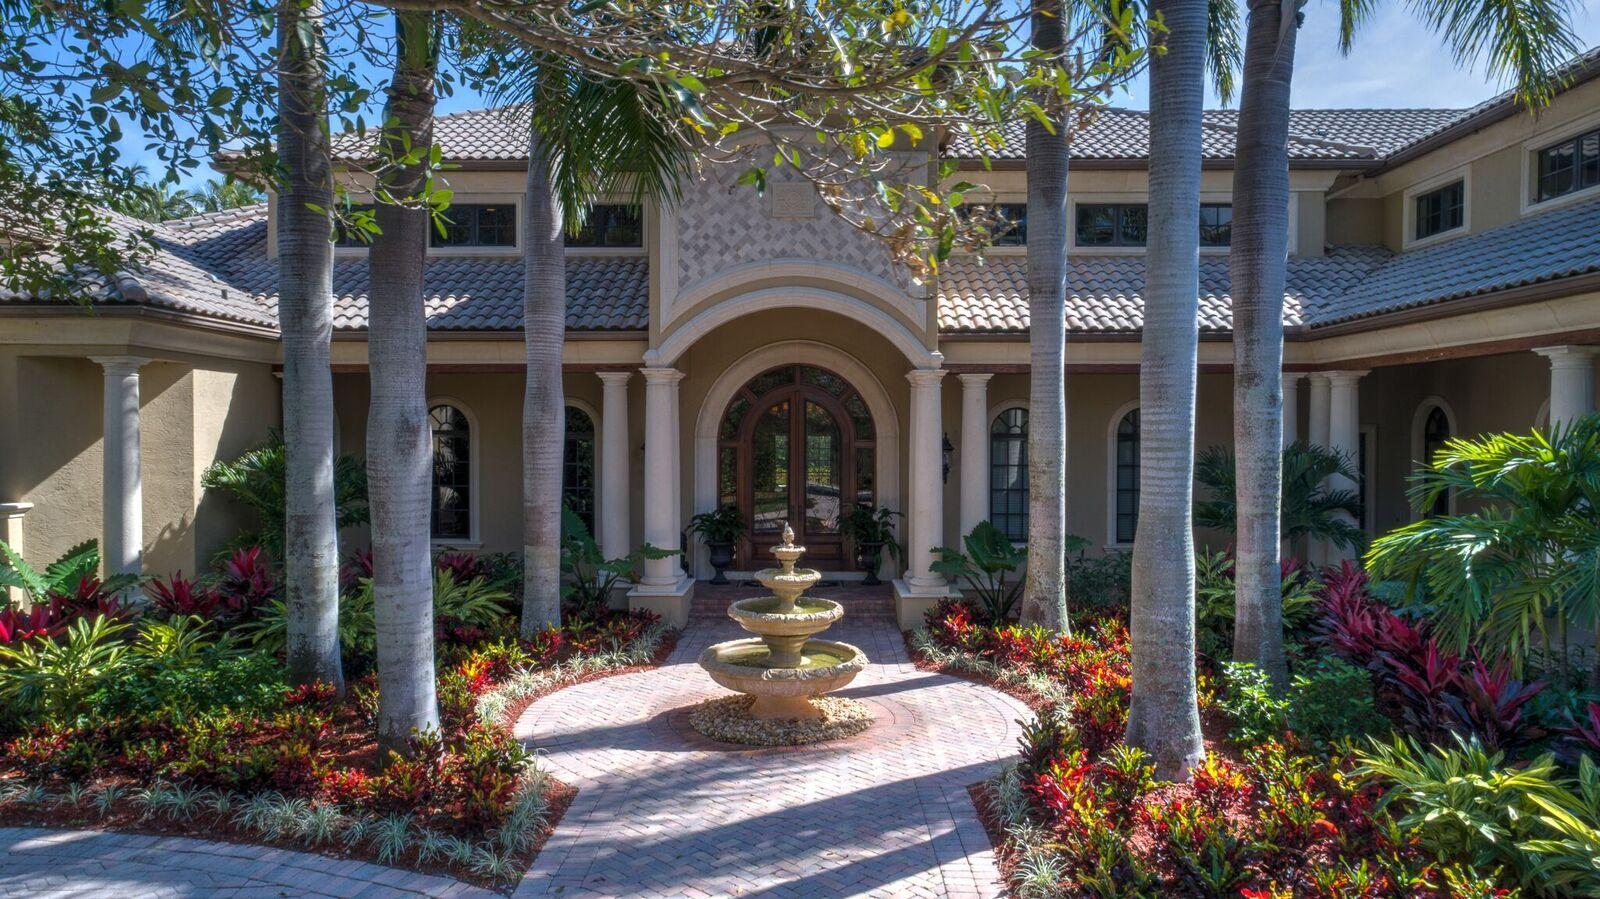 New Home for sale at 1208 Seminole Boulevard  in North Palm Beach